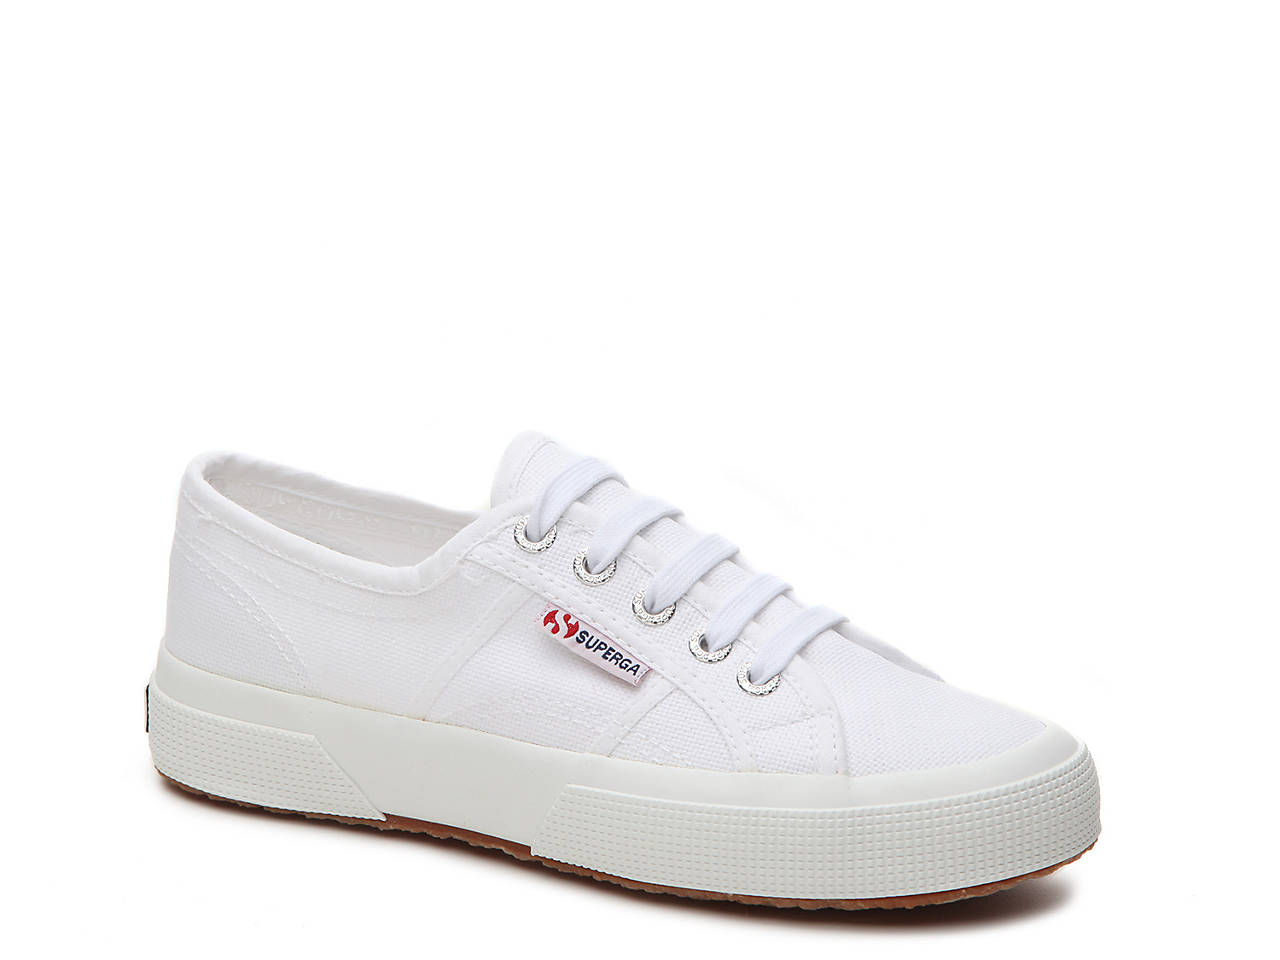 Superga 2750 Cotu Classic Sneaker Women s Shoes  03f029d5a1